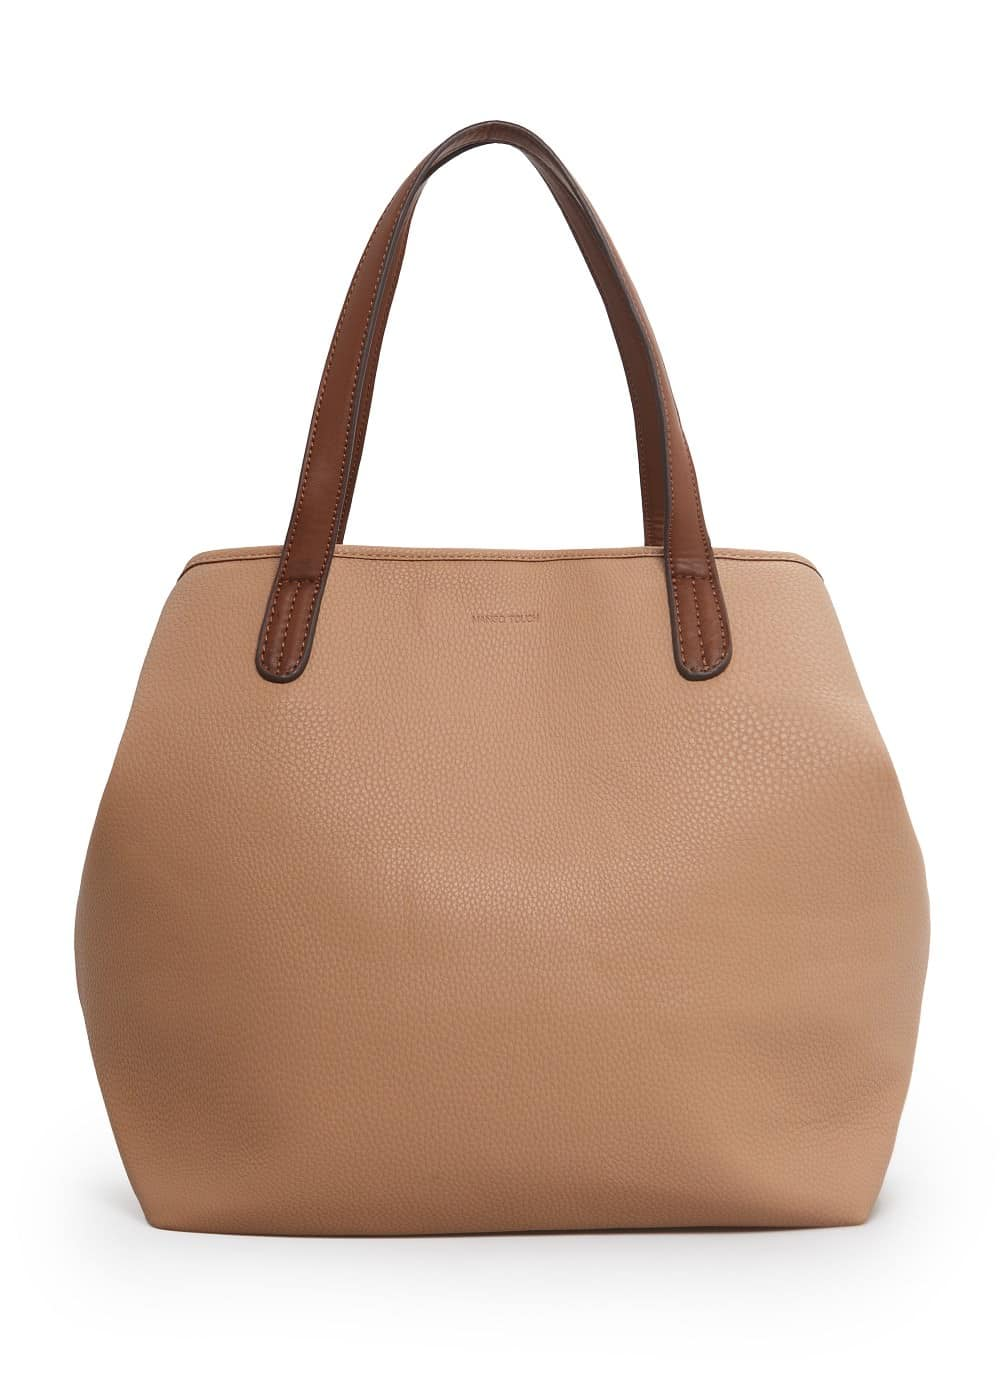 Adjustable shape shopper bag